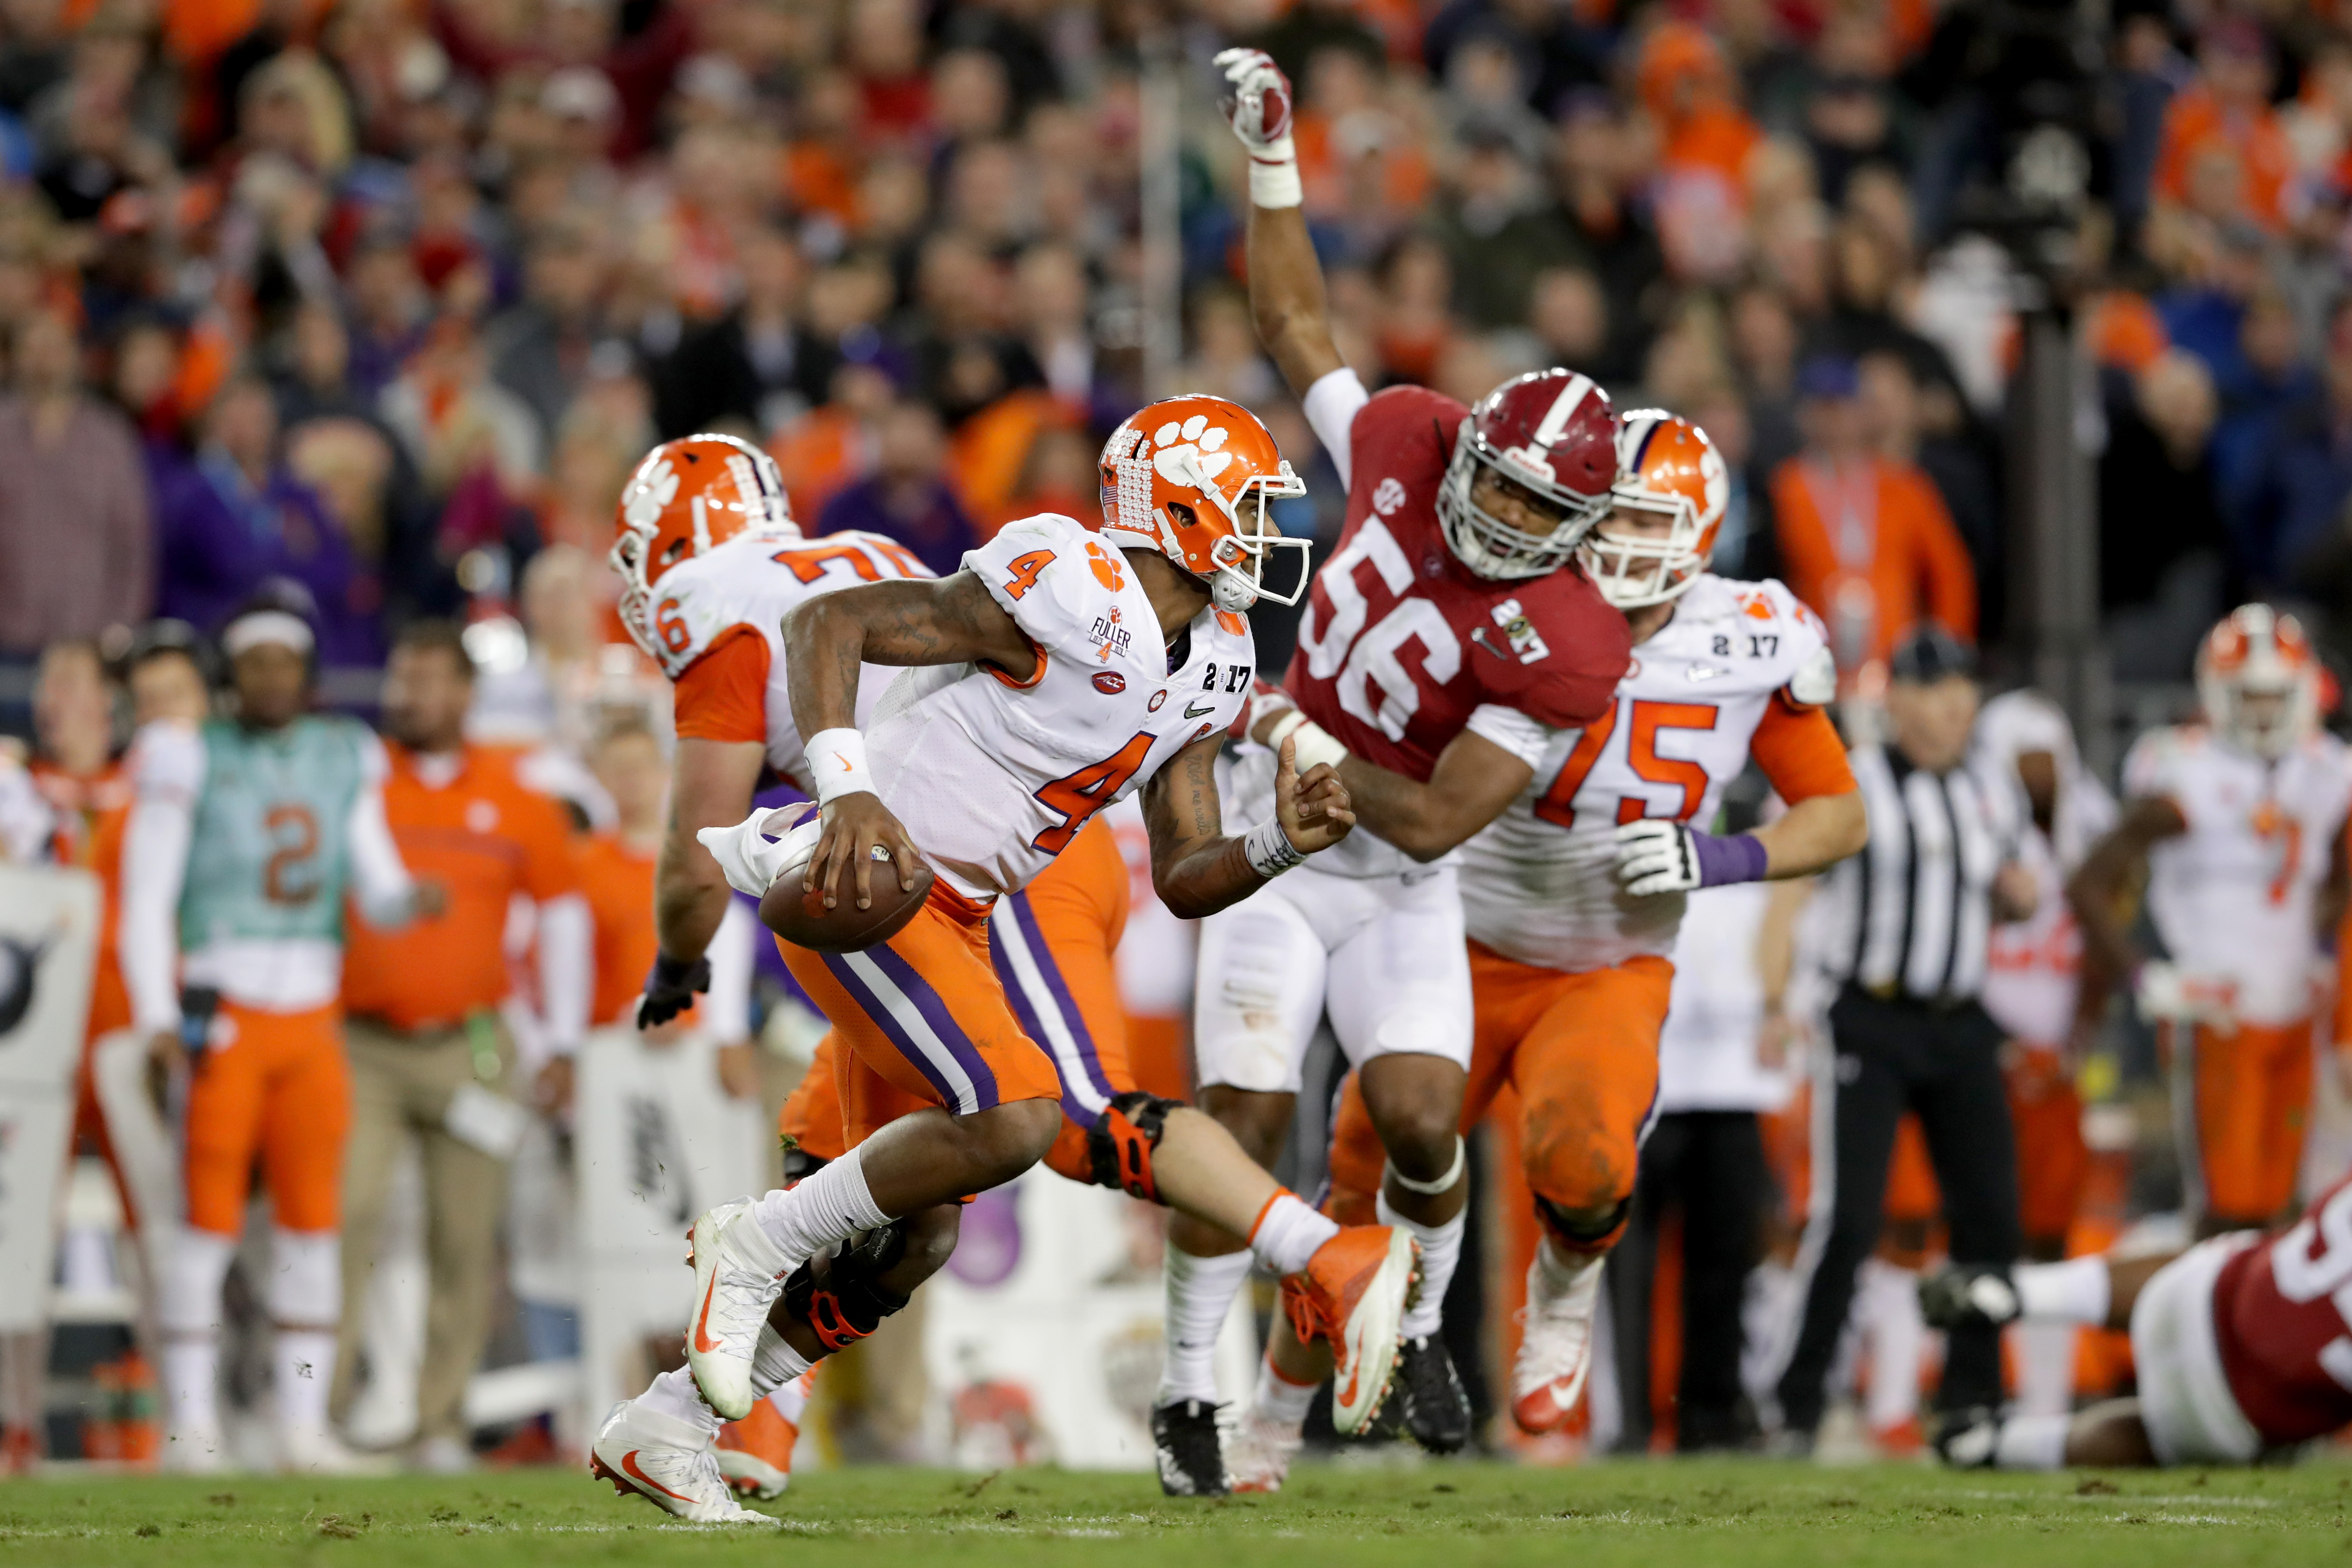 Quarterback Deshaun Watson #4 of the Clemson Tigers scrambles during the second half against the Alabama Crimson Tide in the 2017 College Football Playoff National Championship Game on Jan. 9. (Photo by Streeter Lecka/Getty Images)